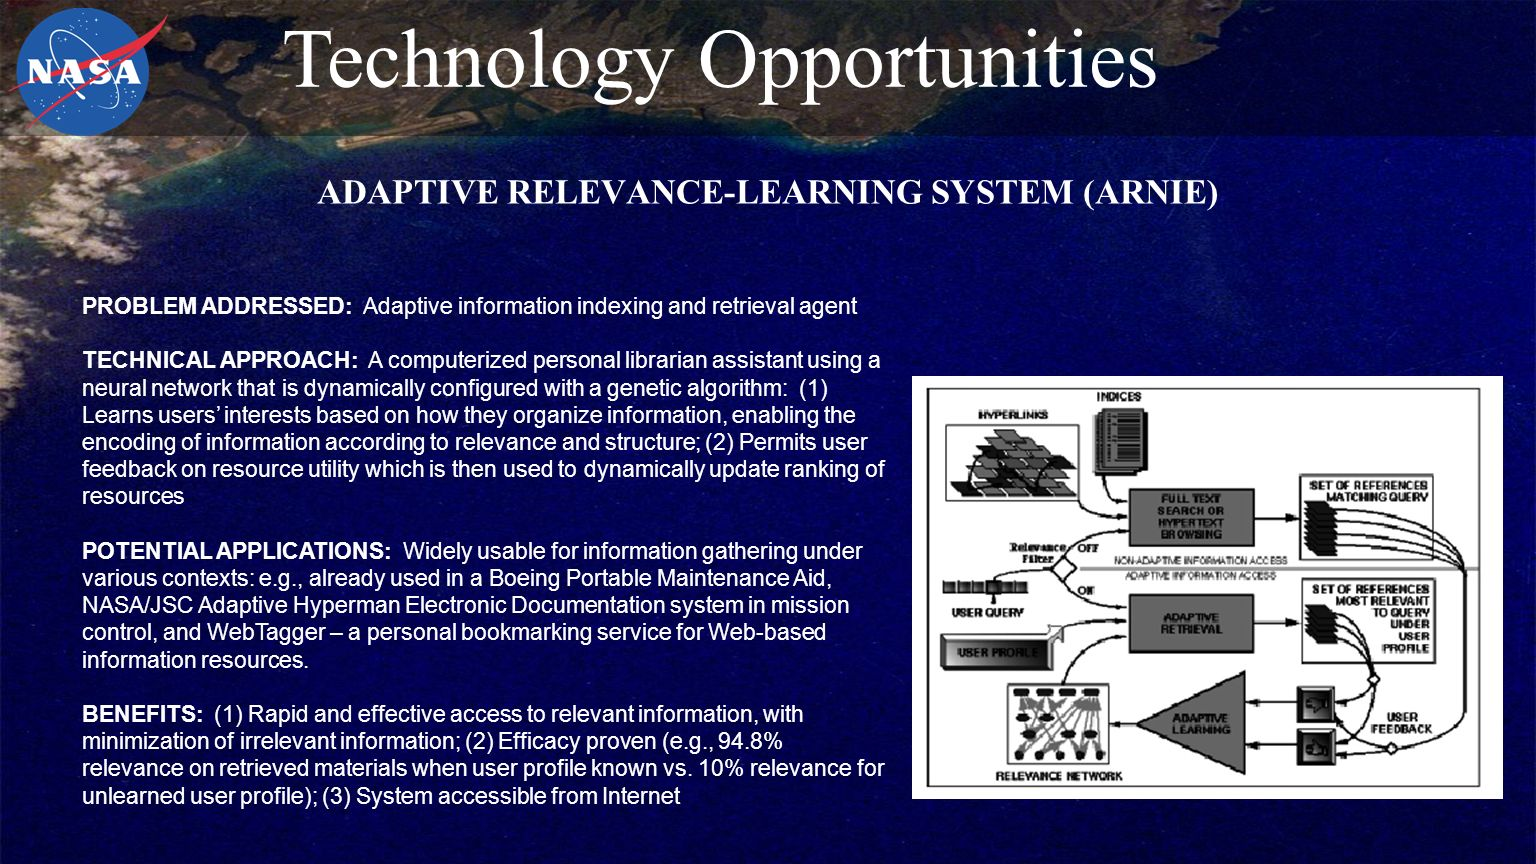 ADAPTIVE RELEVANCE-LEARNING SYSTEM (ARNIE) PROBLEM ADDRESSED: Adaptive information indexing and retrieval agent TECHNICAL APPROACH: A computerized personal librarian assistant using a neural network that is dynamically configured with a genetic algorithm: (1) Learns users' interests based on how they organize information, enabling the encoding of information according to relevance and structure; (2) Permits user feedback on resource utility which is then used to dynamically update ranking of resources POTENTIAL APPLICATIONS: Widely usable for information gathering under various contexts: e.g., already used in a Boeing Portable Maintenance Aid, NASA/JSC Adaptive Hyperman Electronic Documentation system in mission control, and WebTagger – a personal bookmarking service for Web-based information resources.